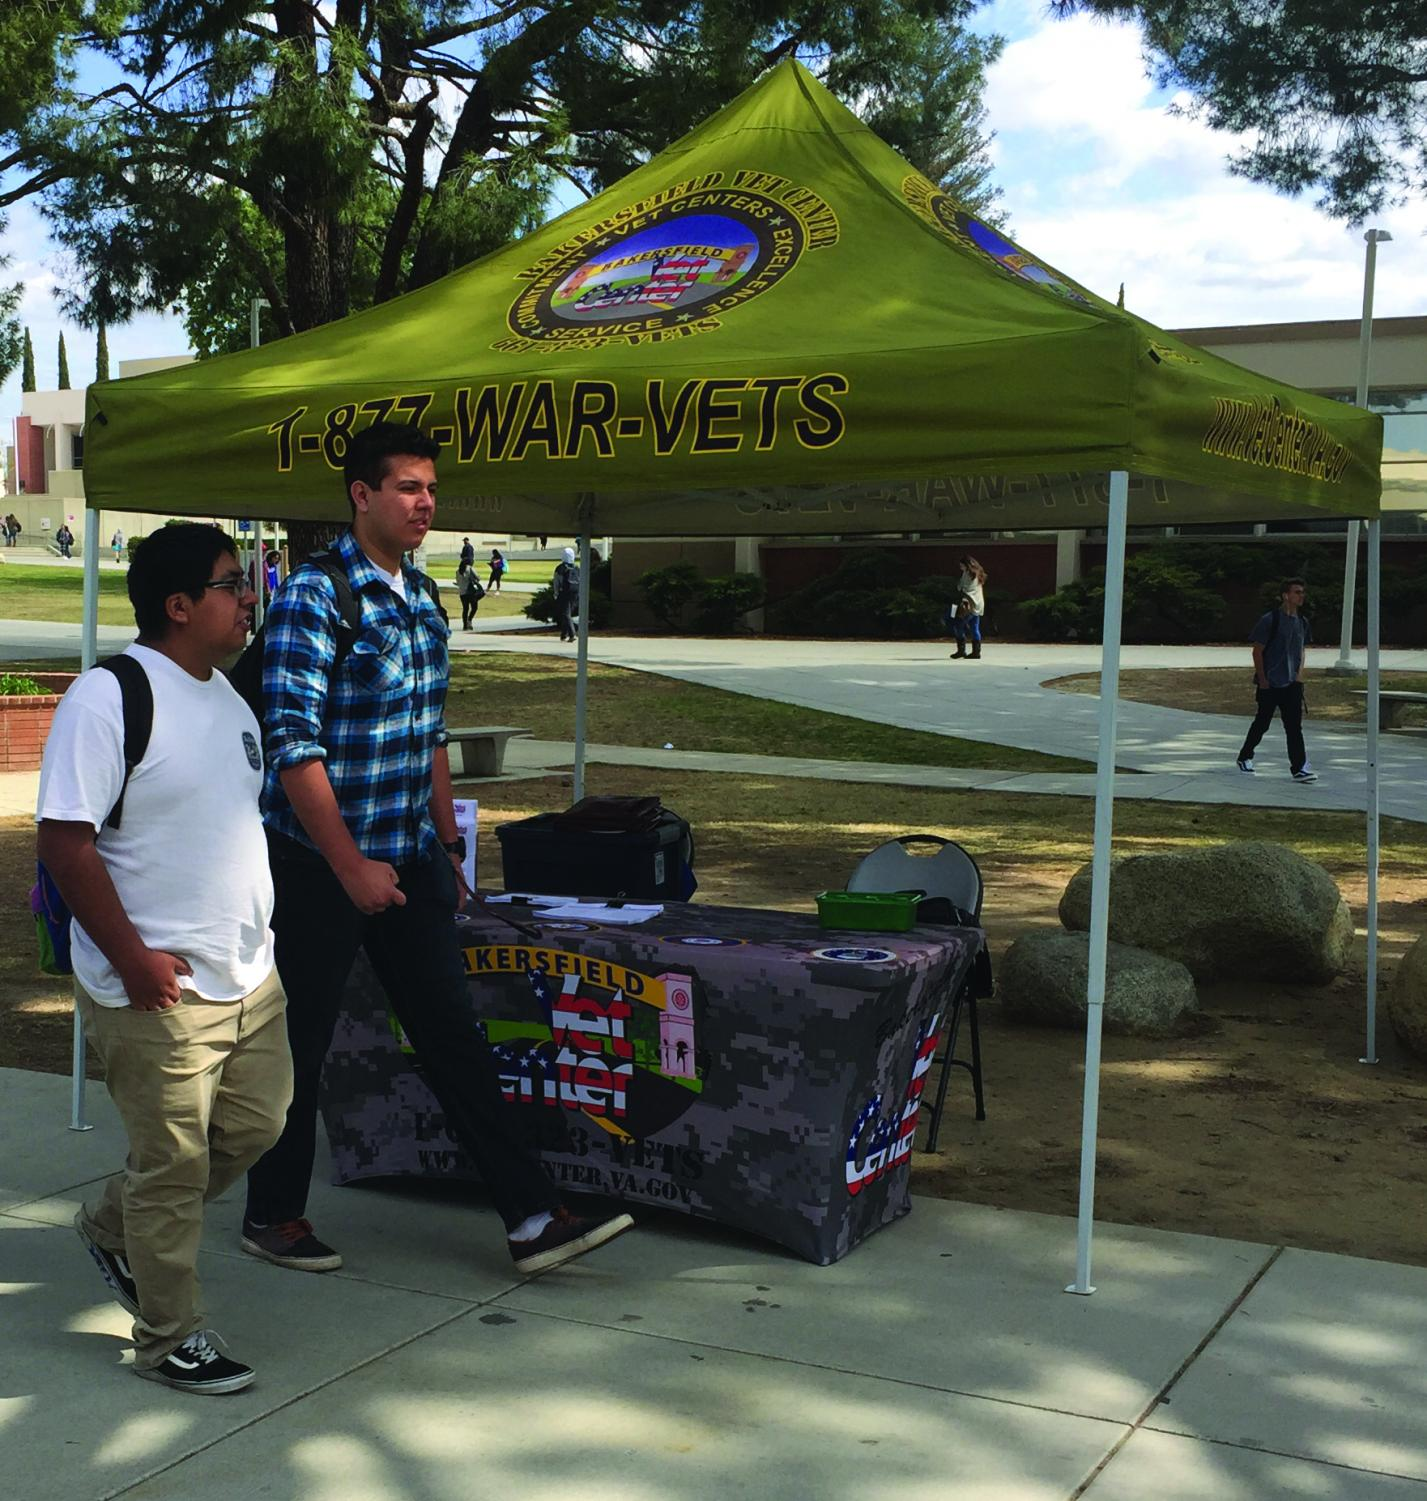 The Vet Center sets up a booth on campus to offer services to Bakersfield College veterans.